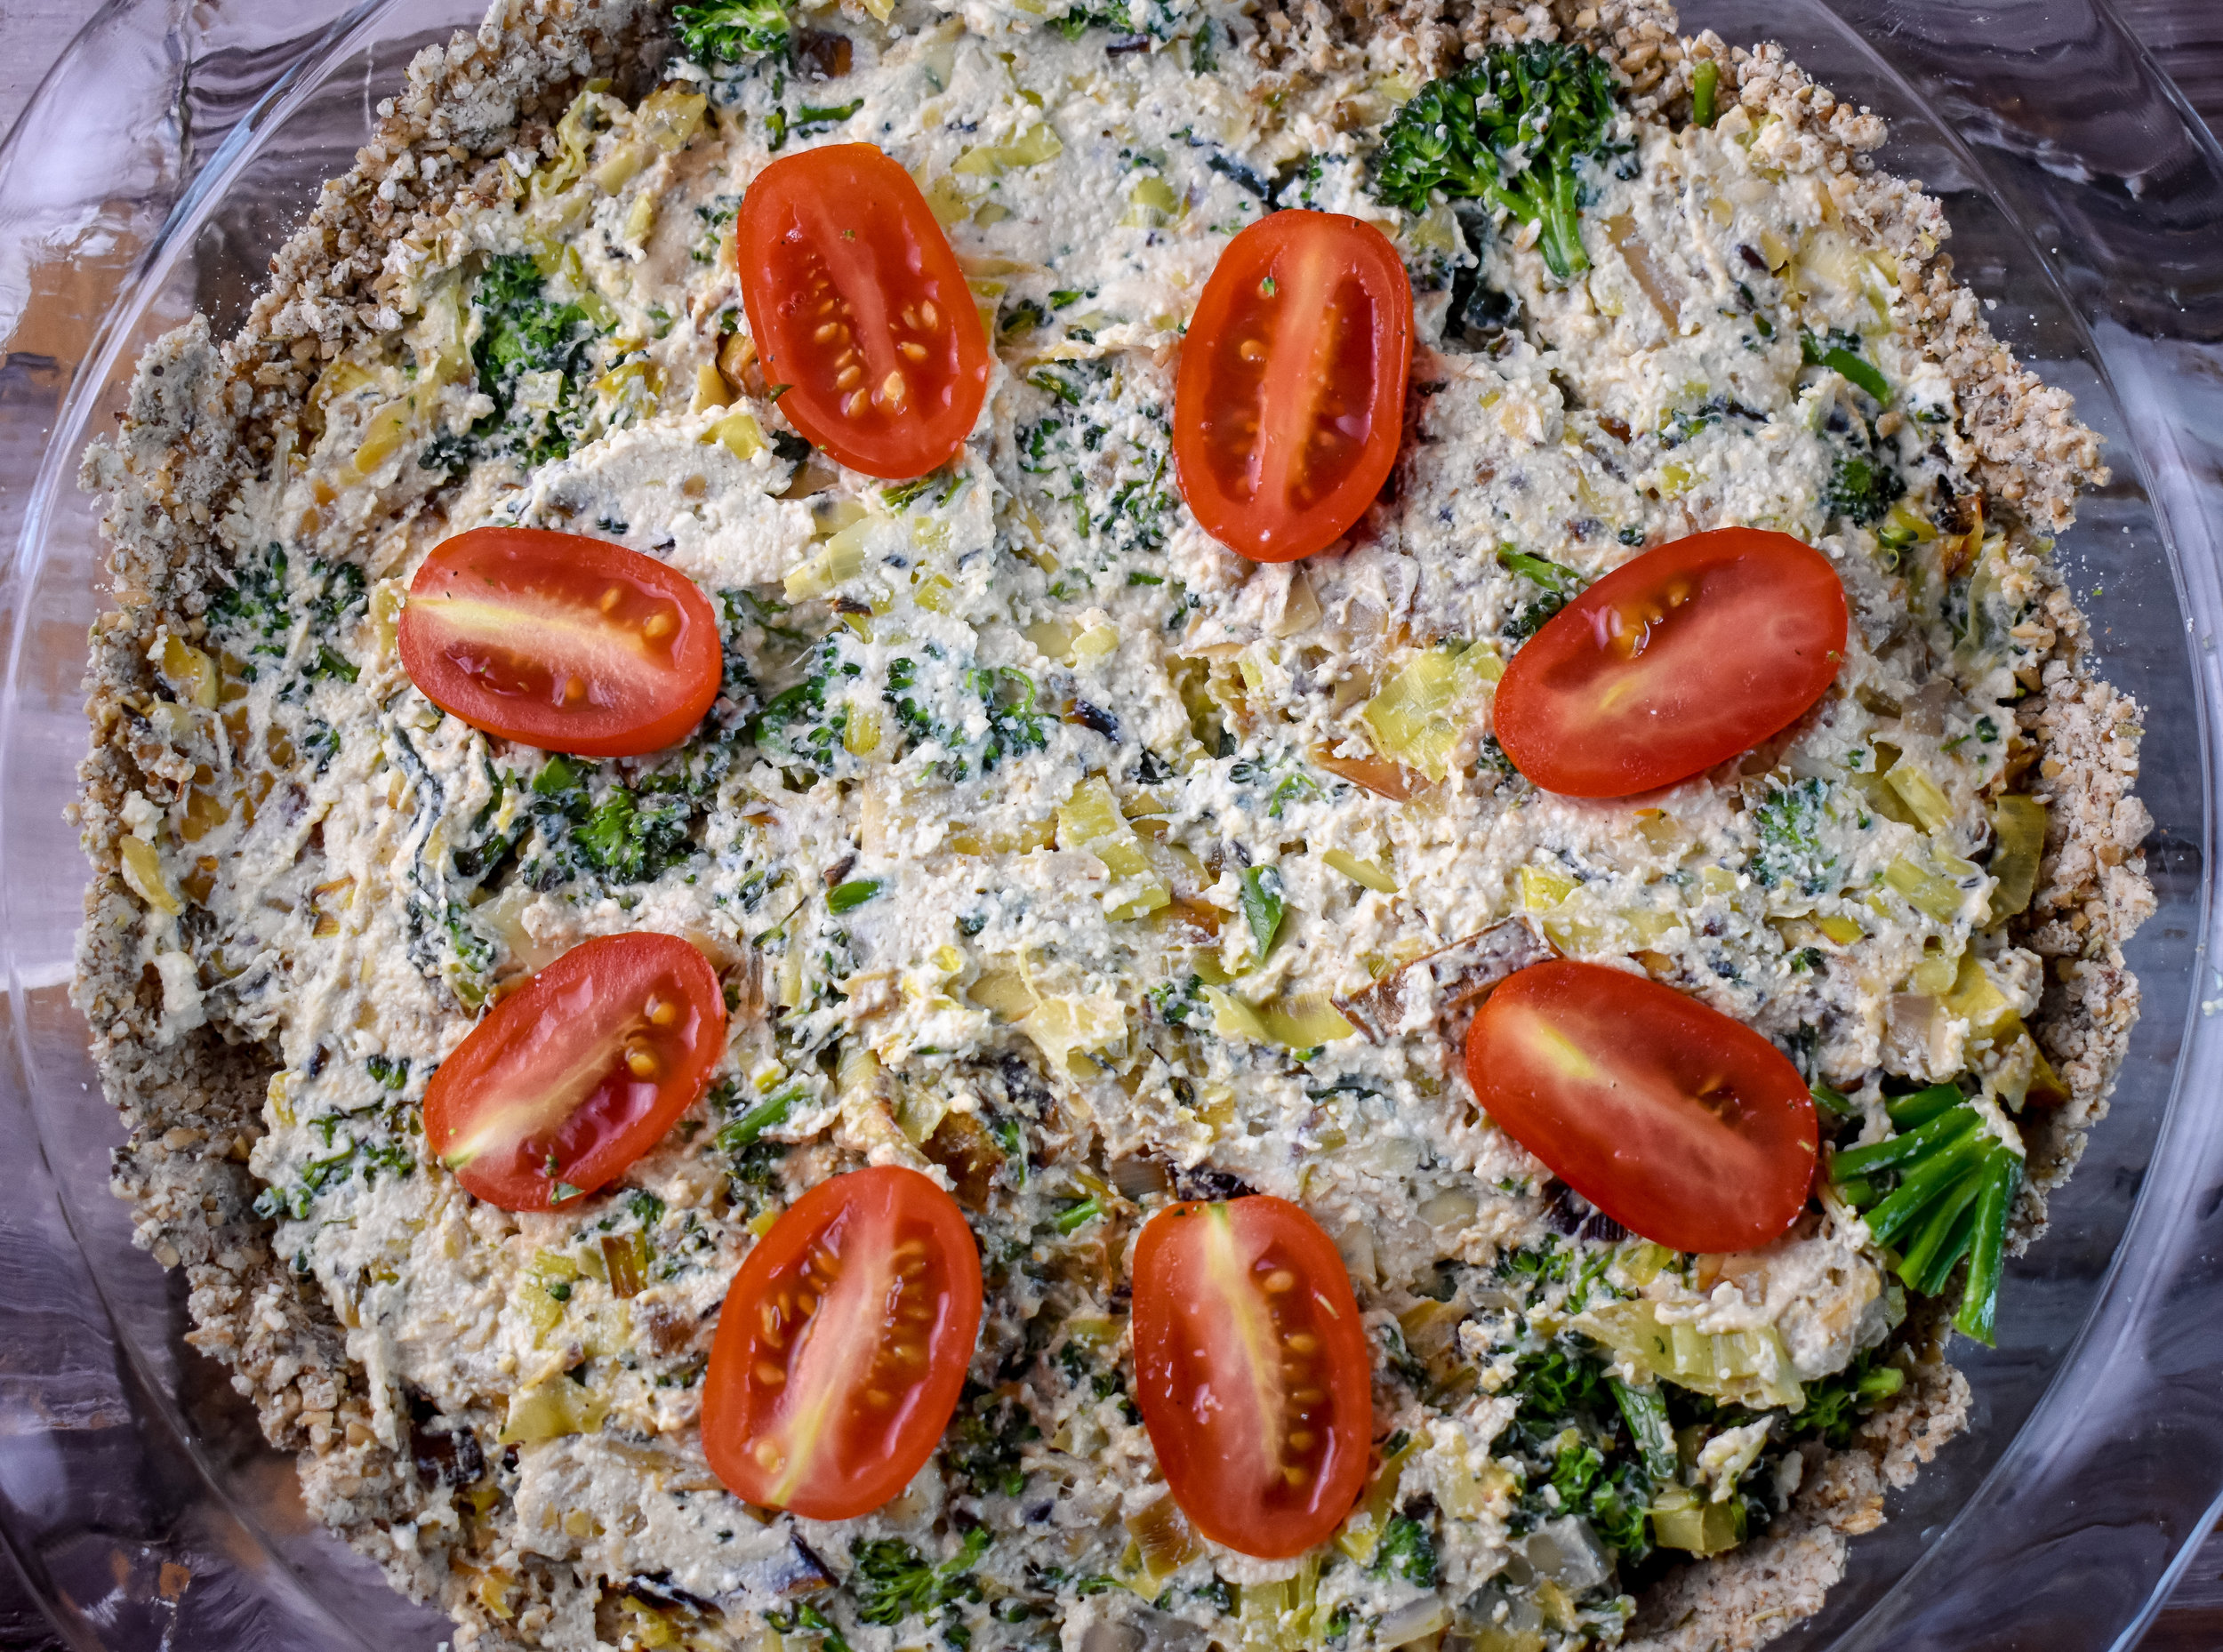 10. Spread the tofu mixture across the crust that has been baked and I like to place a few tomato halves on top of the quiche for some added flavor.